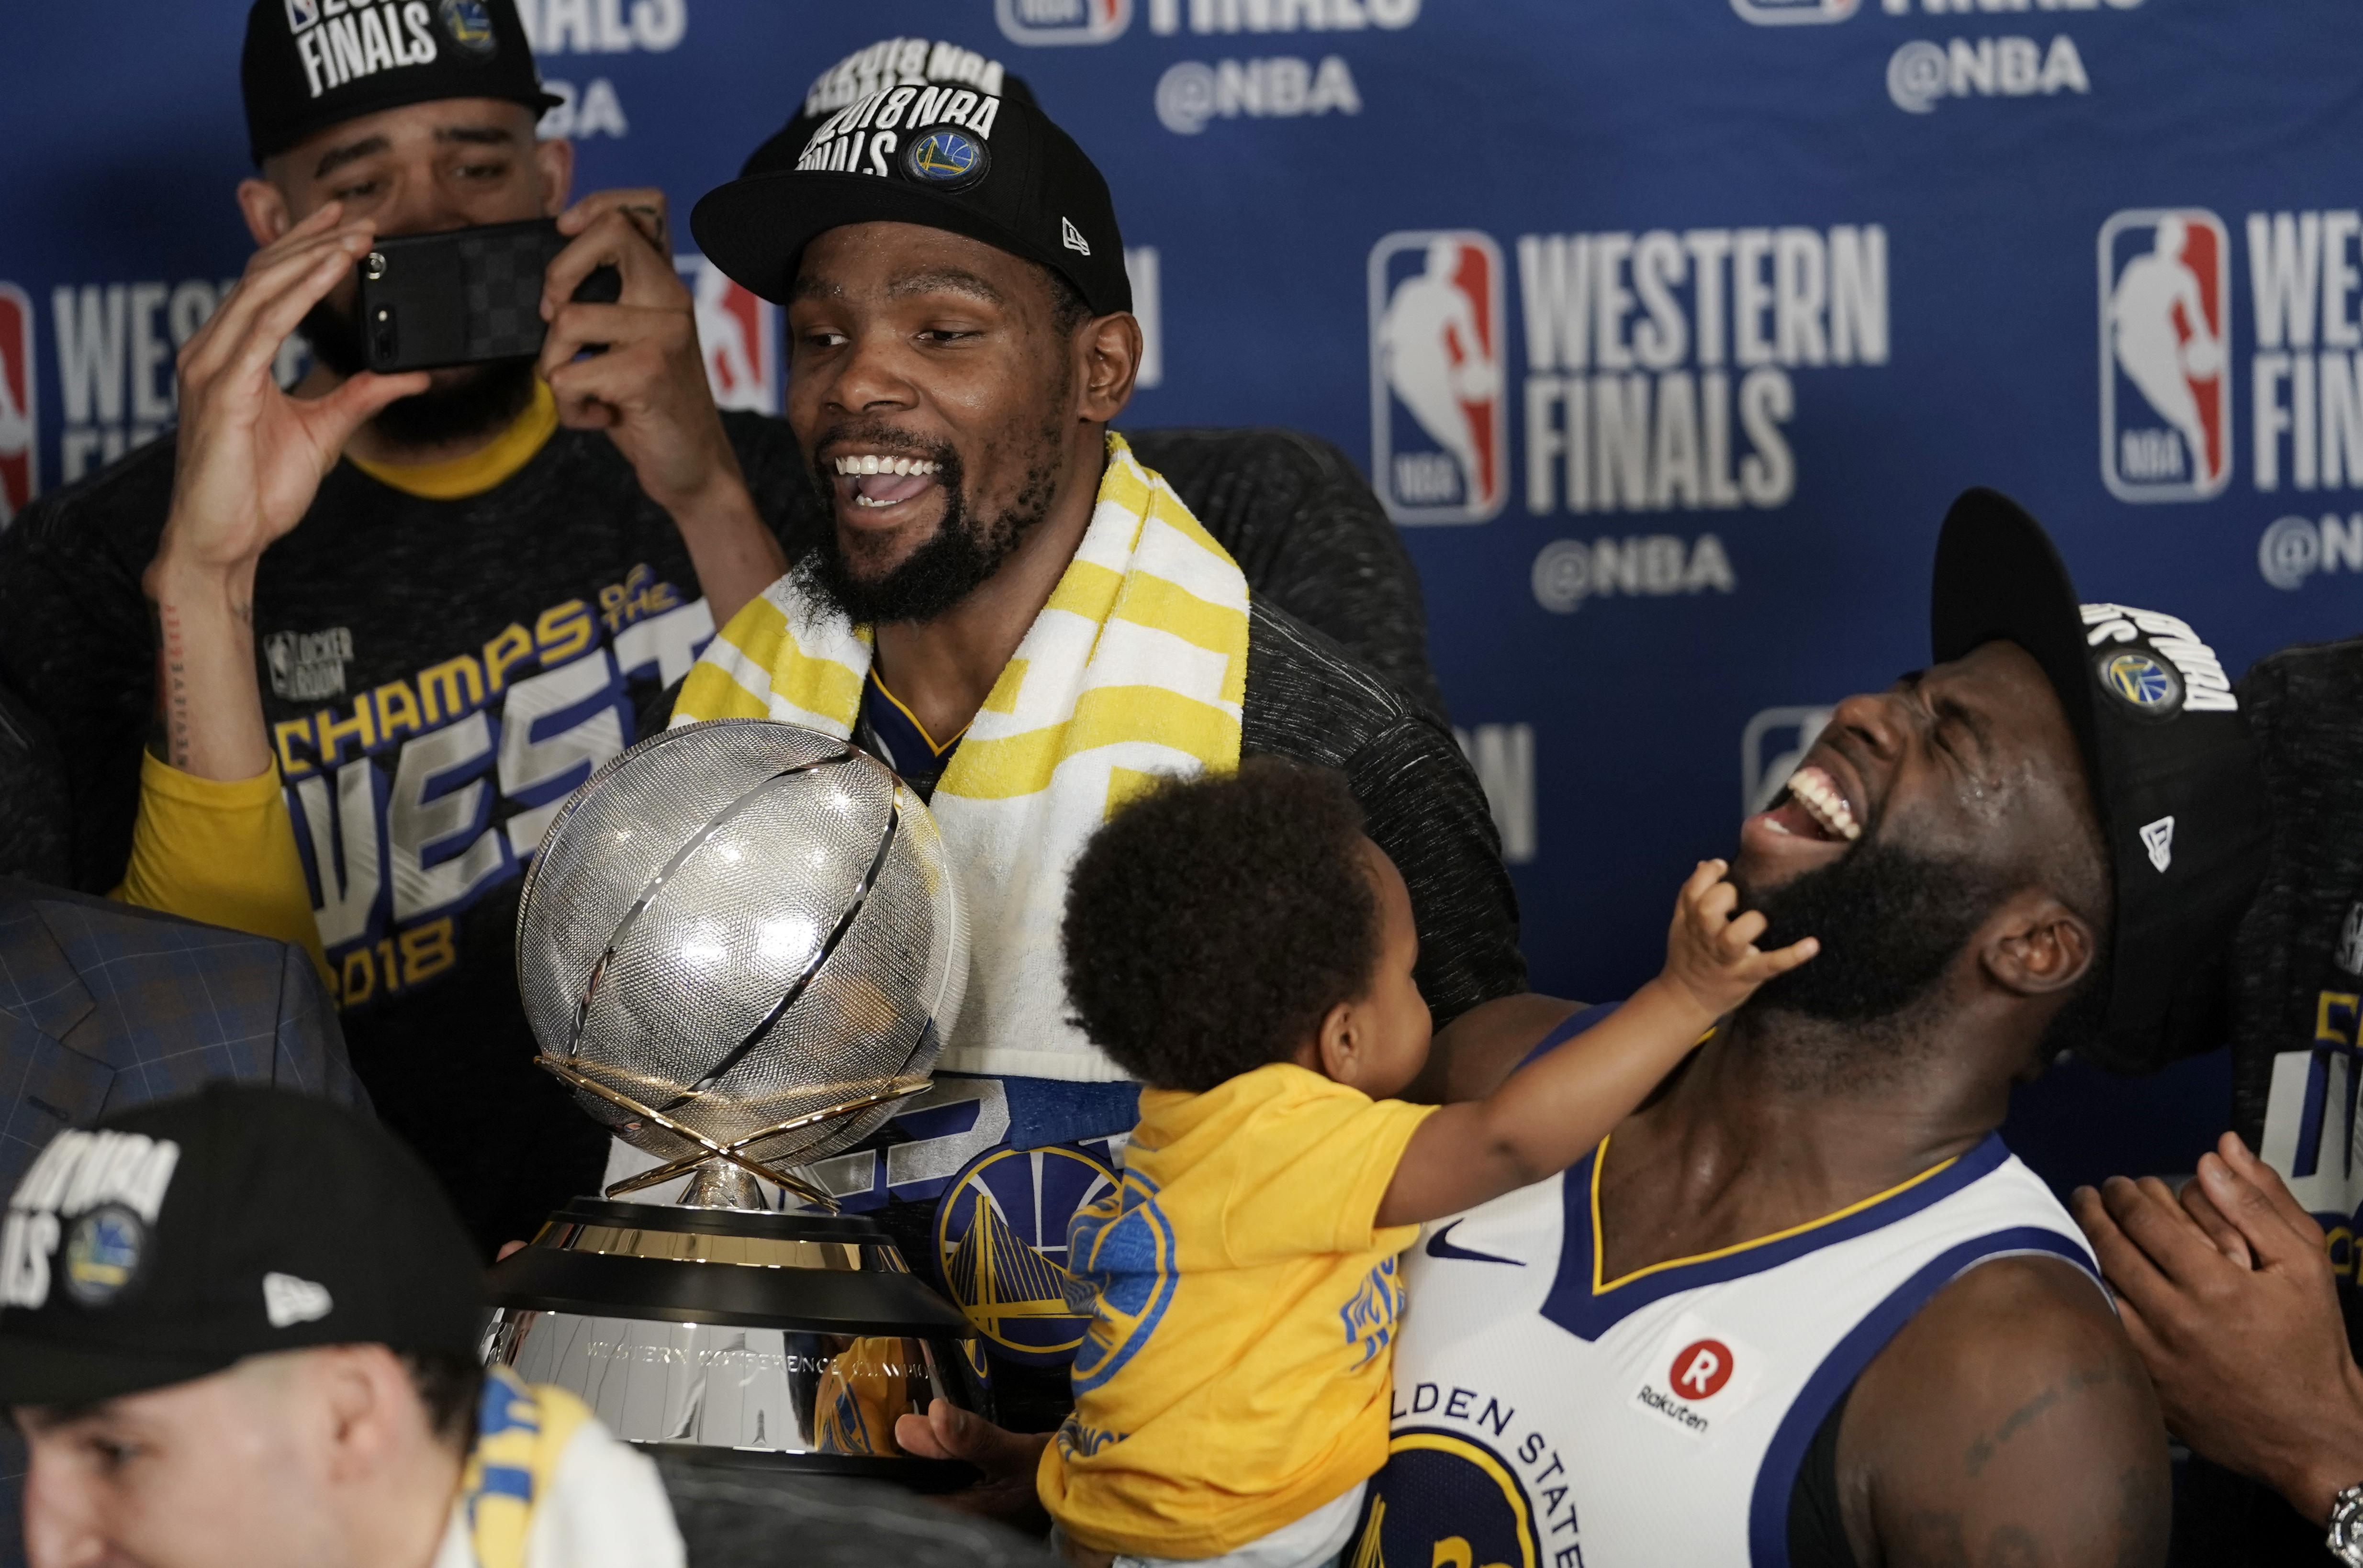 d5e6cbecf628 Golden State Warriors forward Kevin Durant holds the trophy as he and  teammate Draymond Green